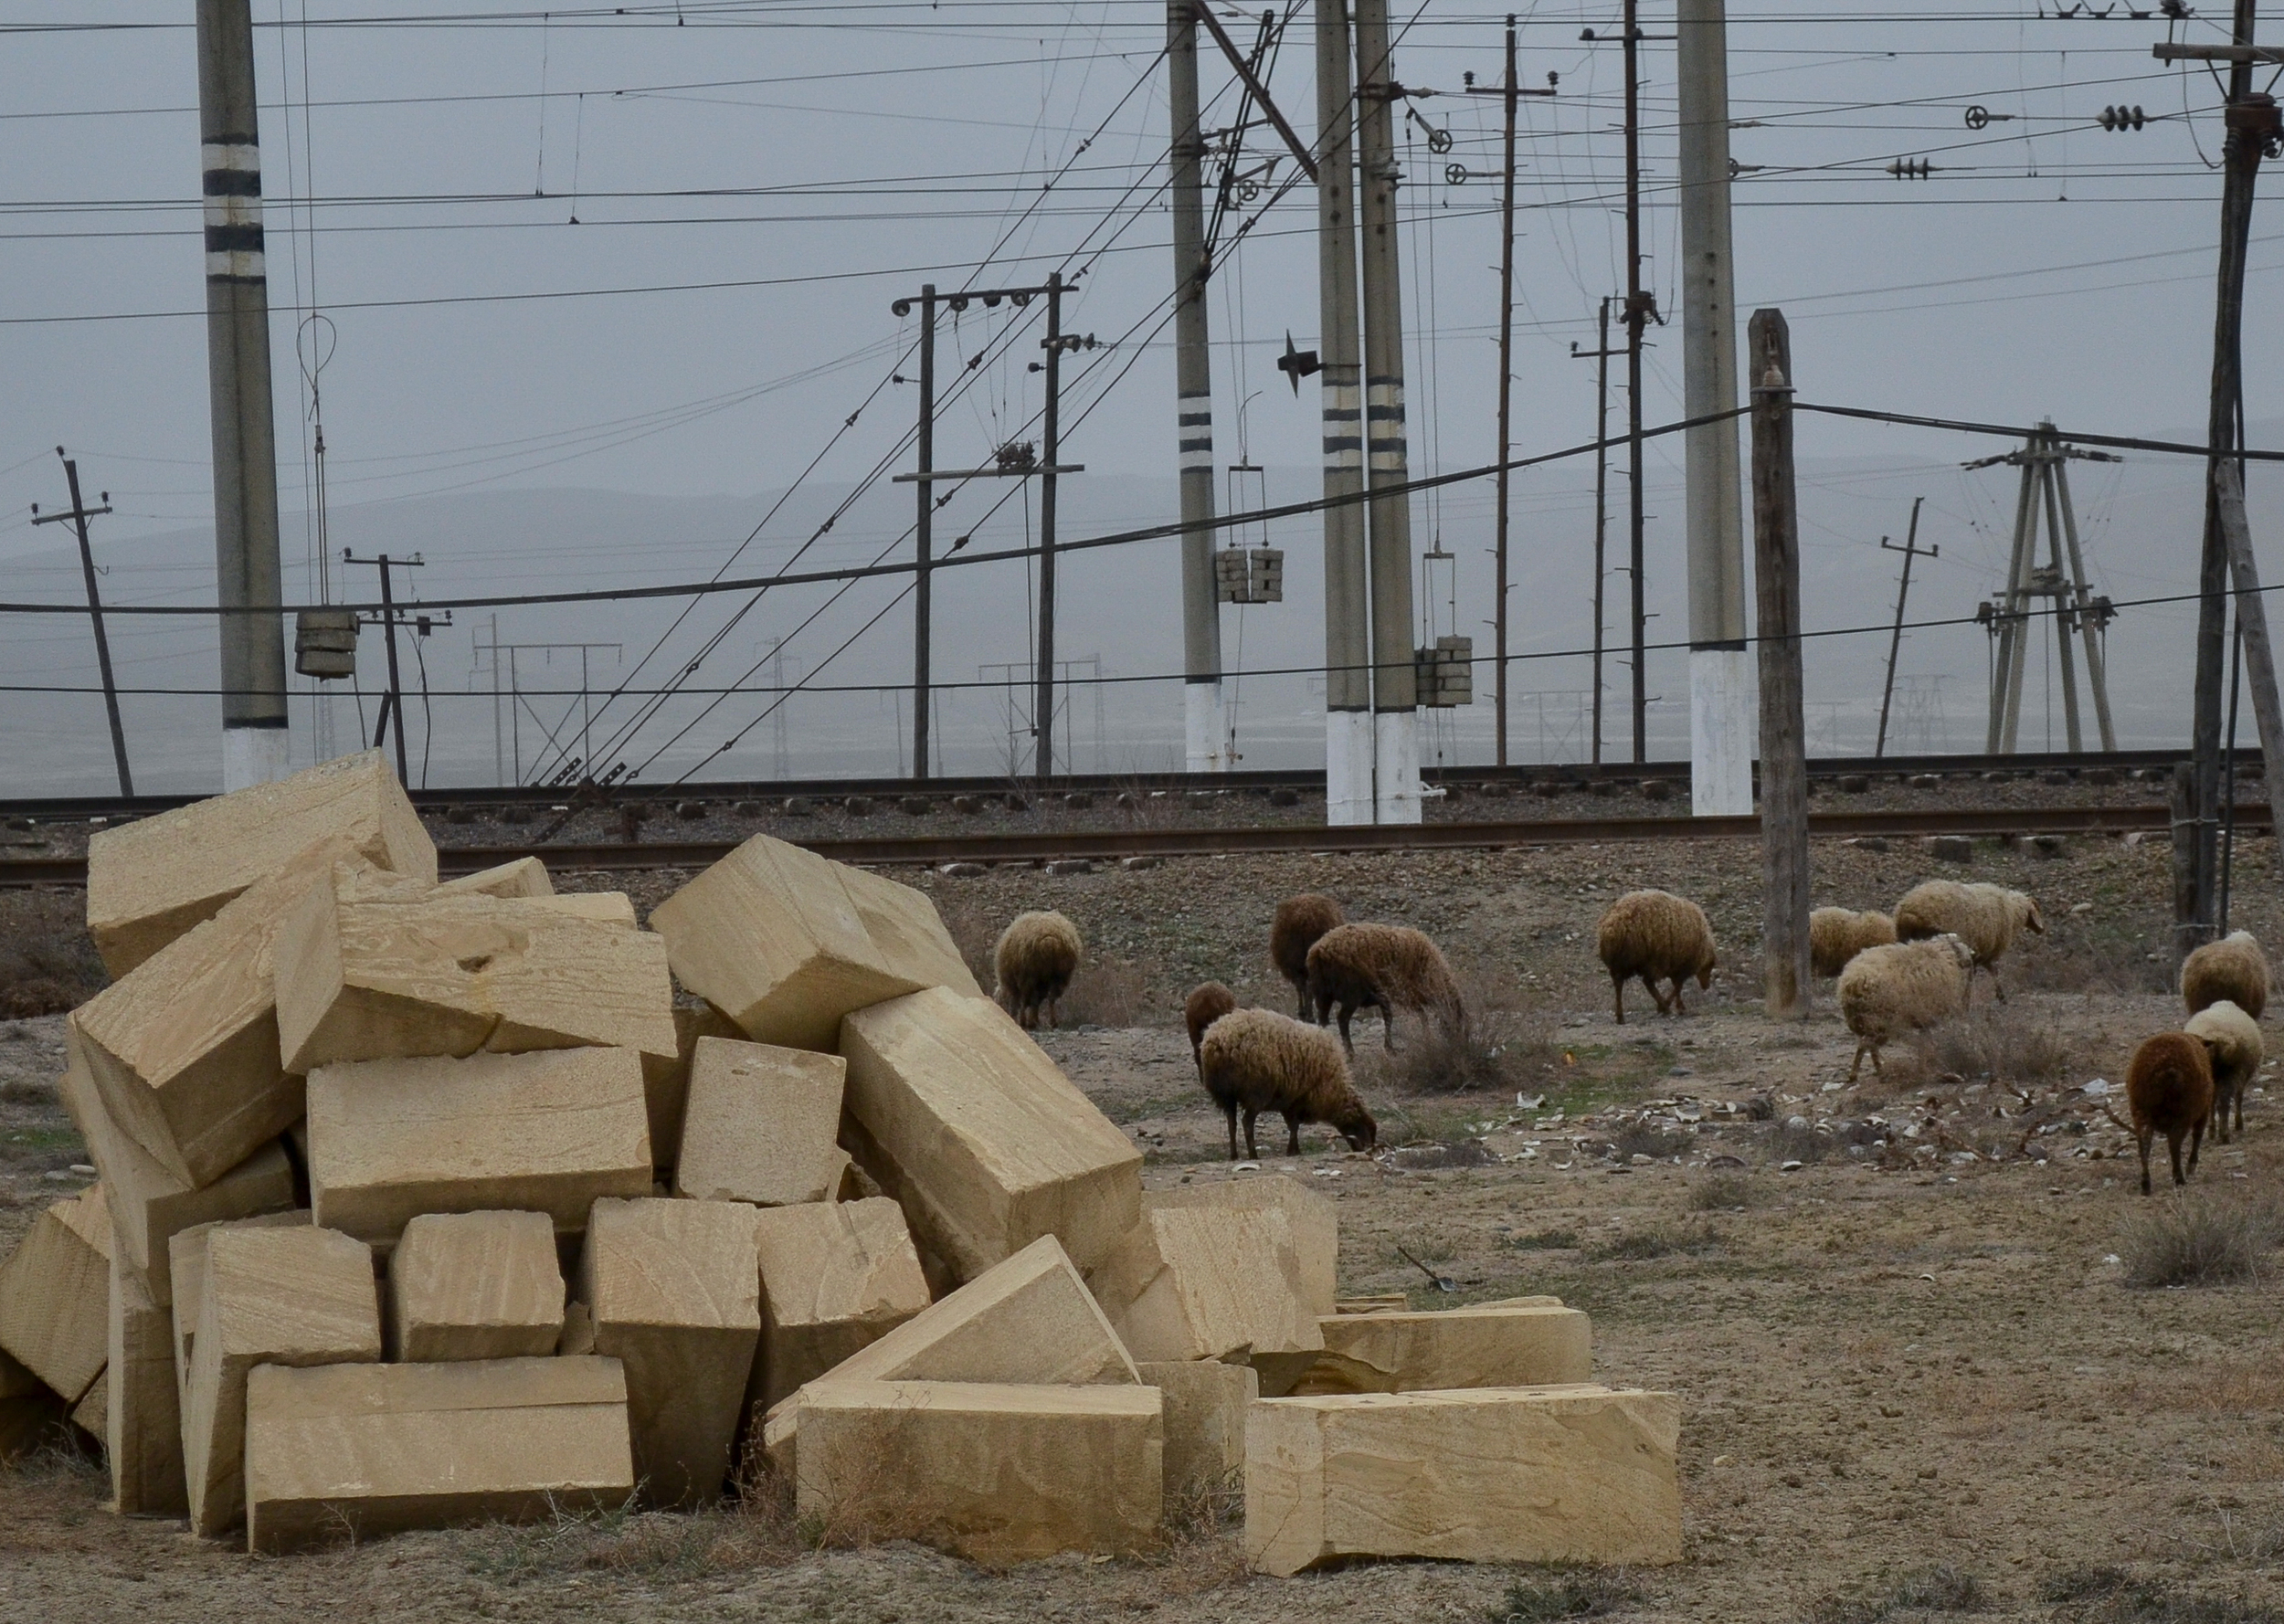 Sheep and railroad - my favorite combination.